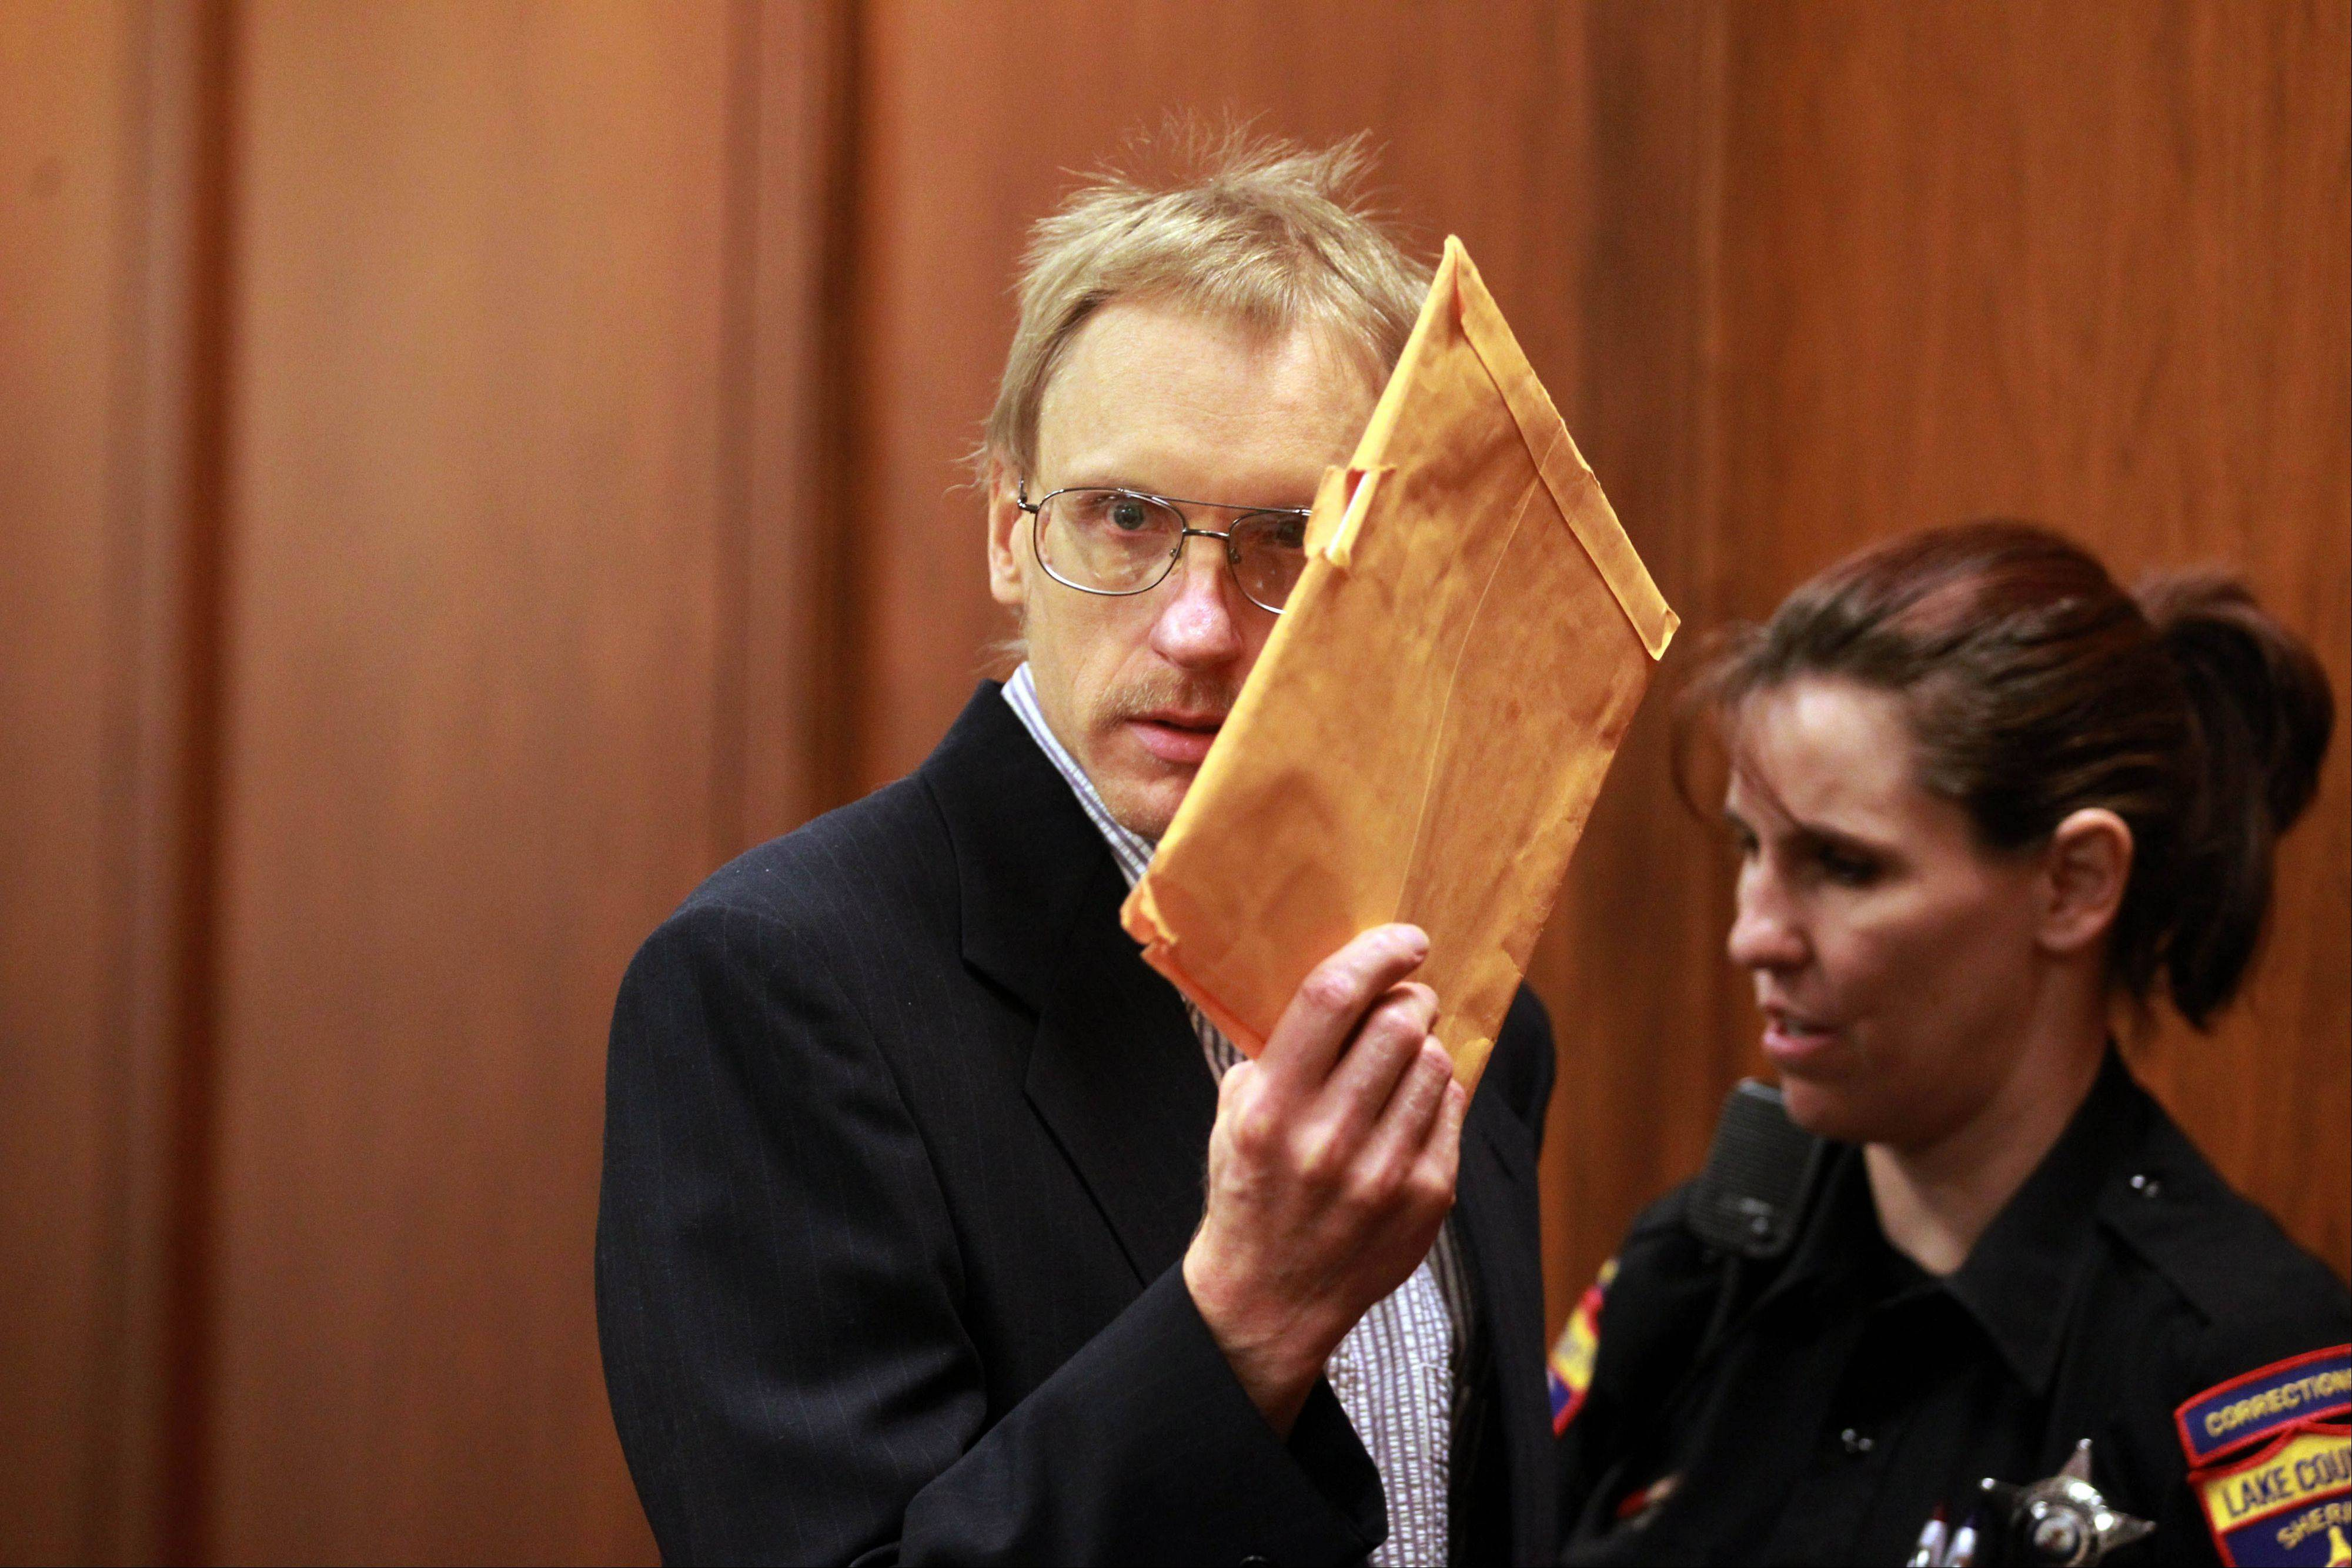 Ronald Stolberg covers his face as he enters the courtroom of Judge Mark Levitt in Lake County on Wednesday. Stolberg is on trial for the 2011 first-degree murder for his wife, Rachel Stolberg.